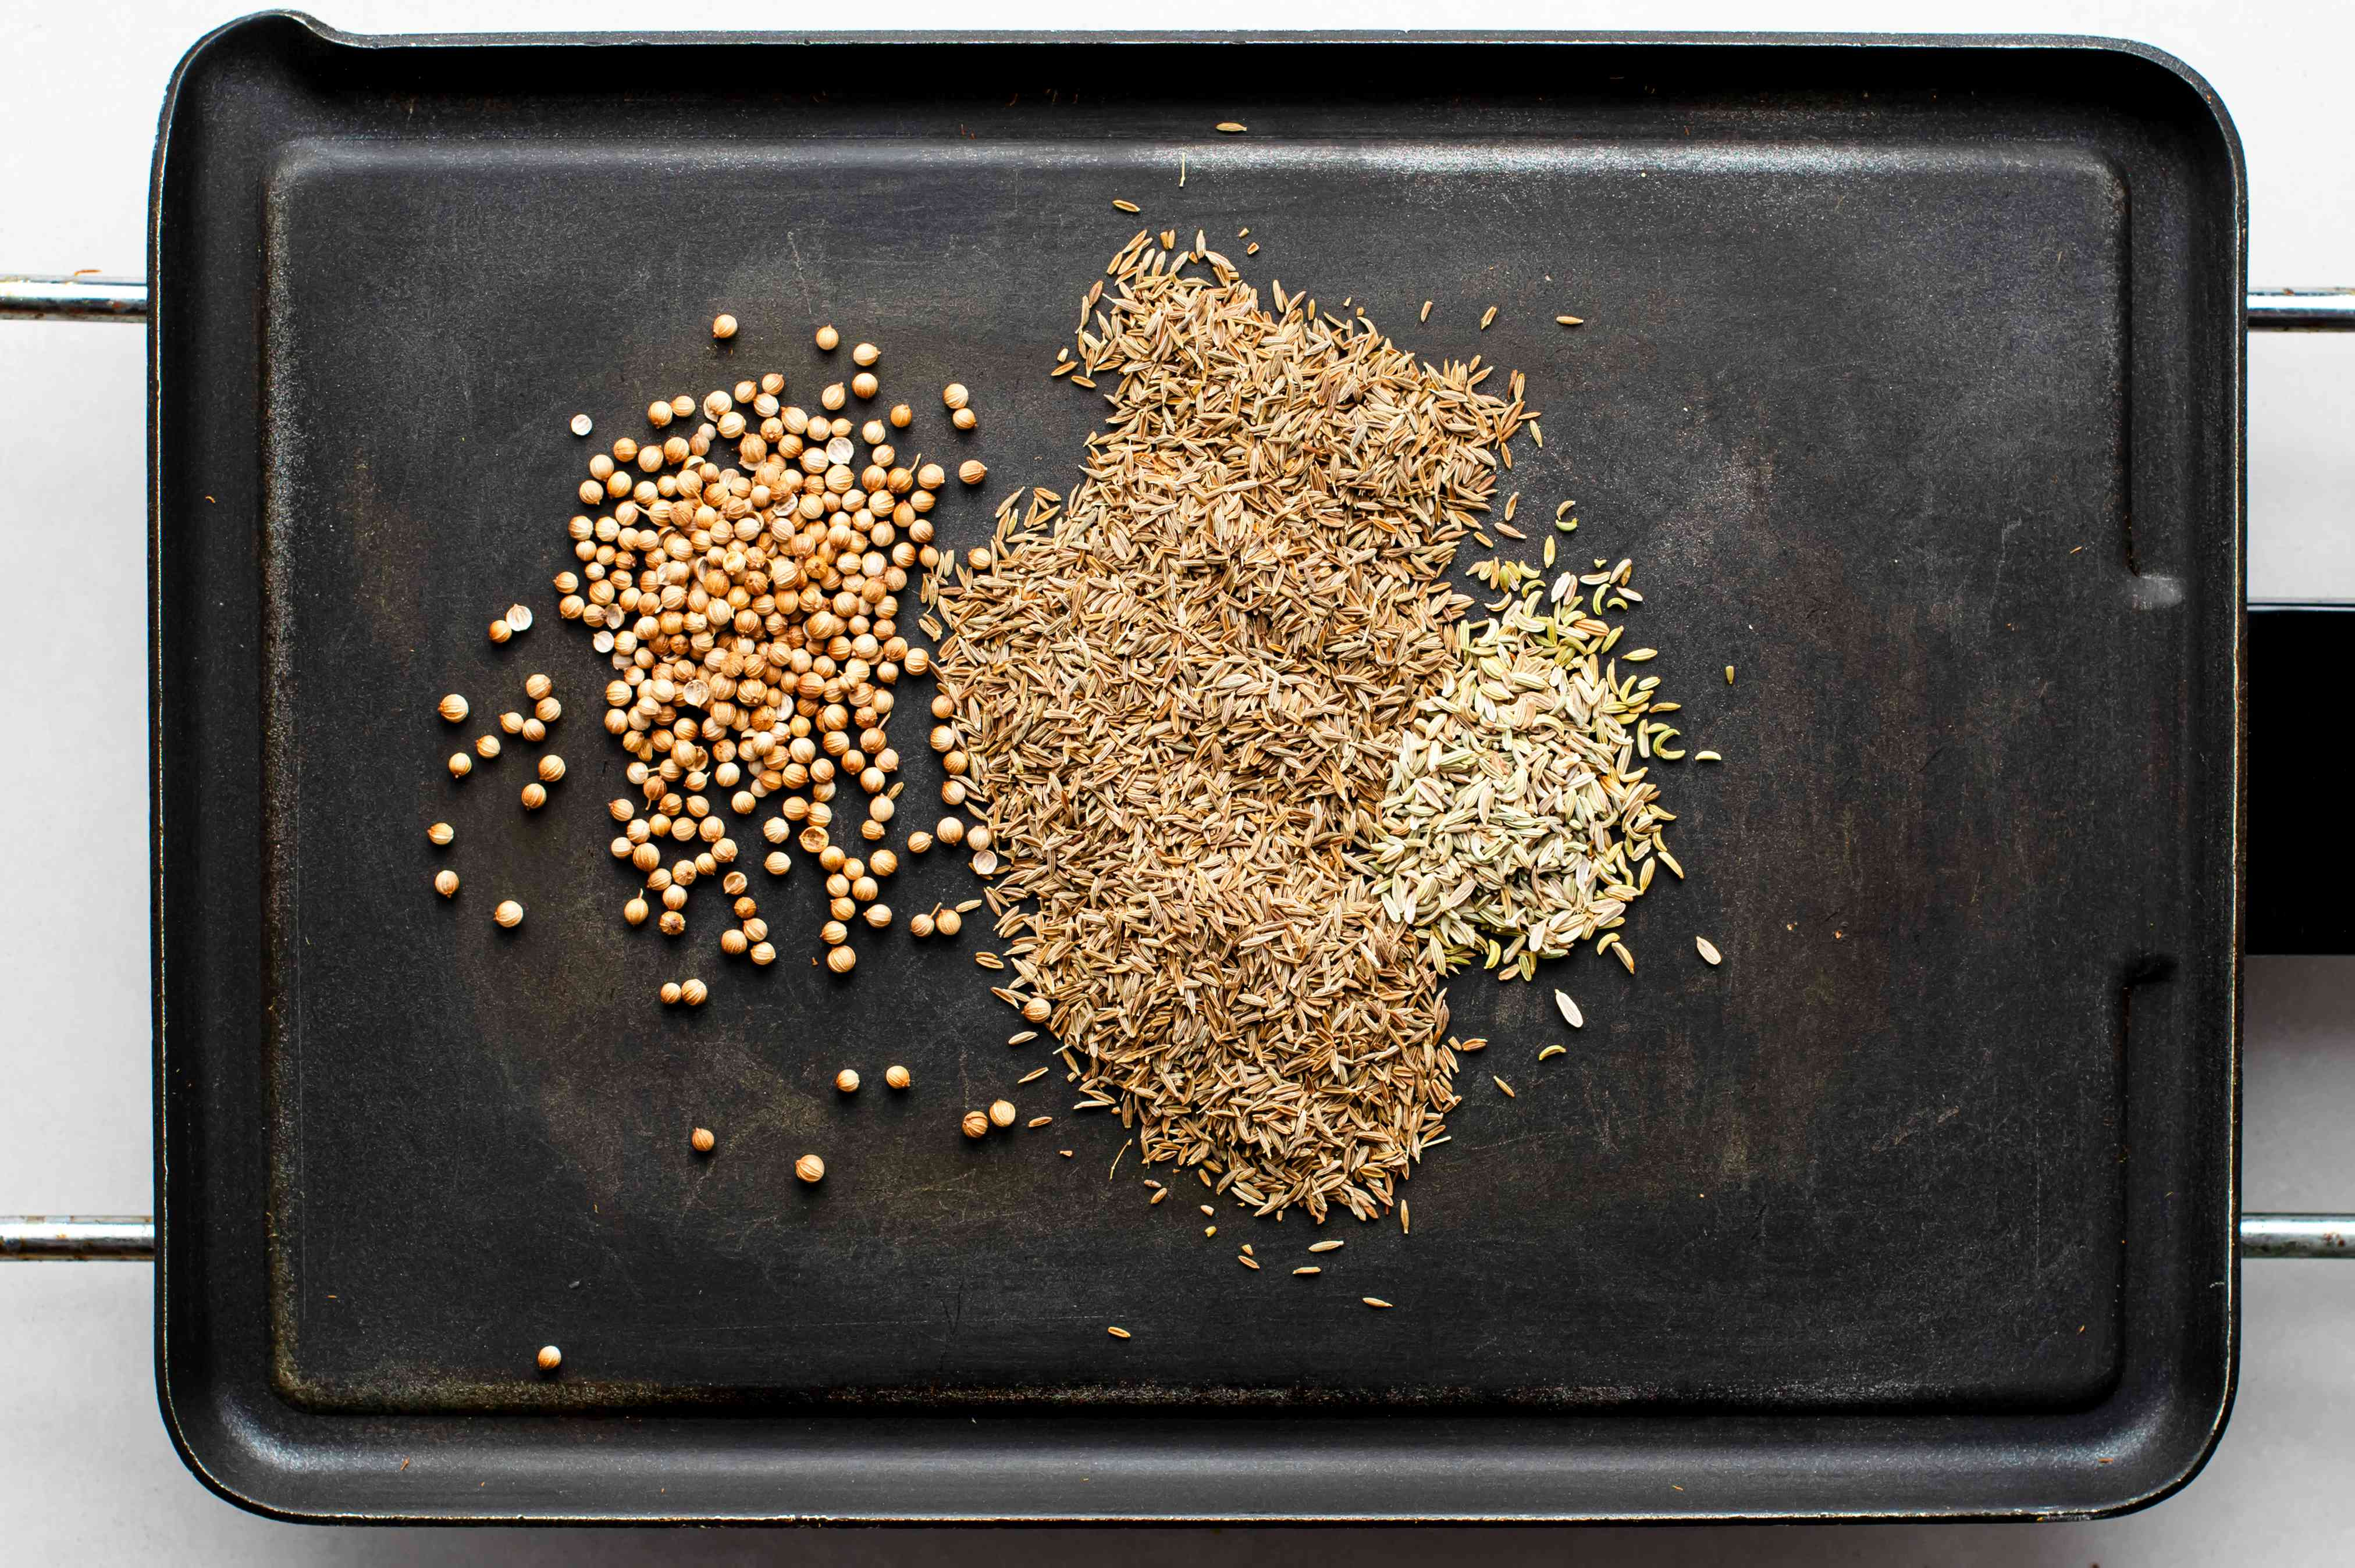 Cumin, coriander, and fennel seeds on a grill